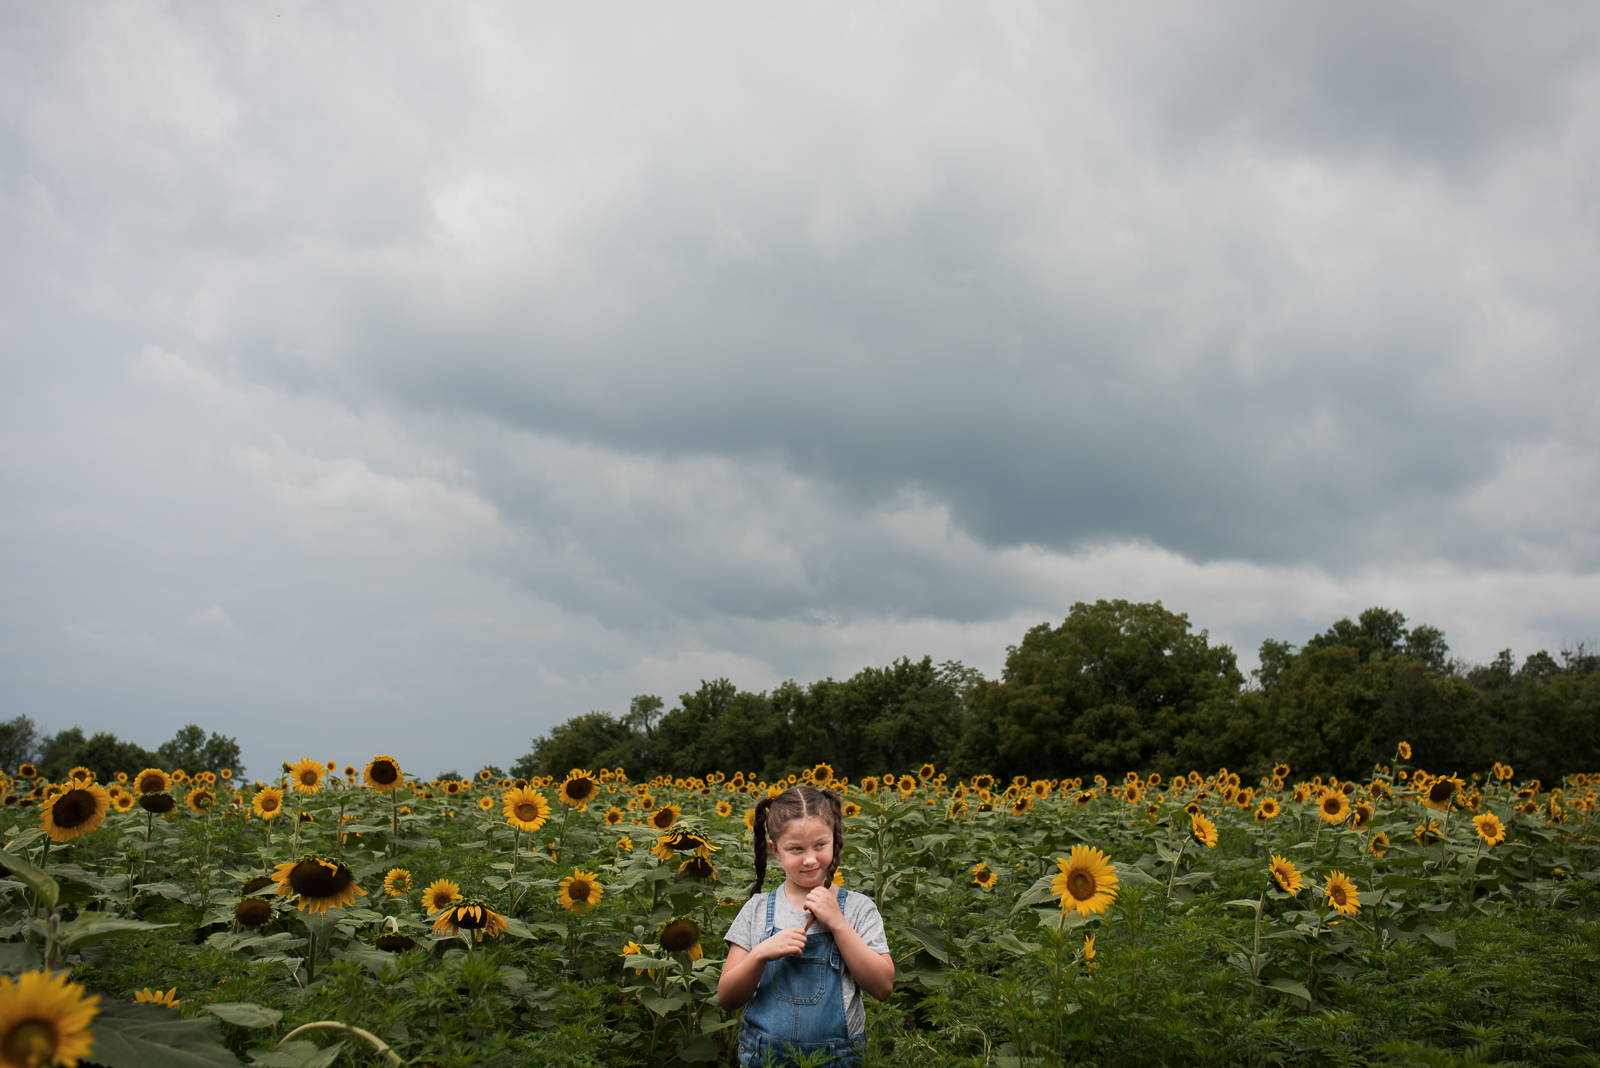 sunflowers-.jpg